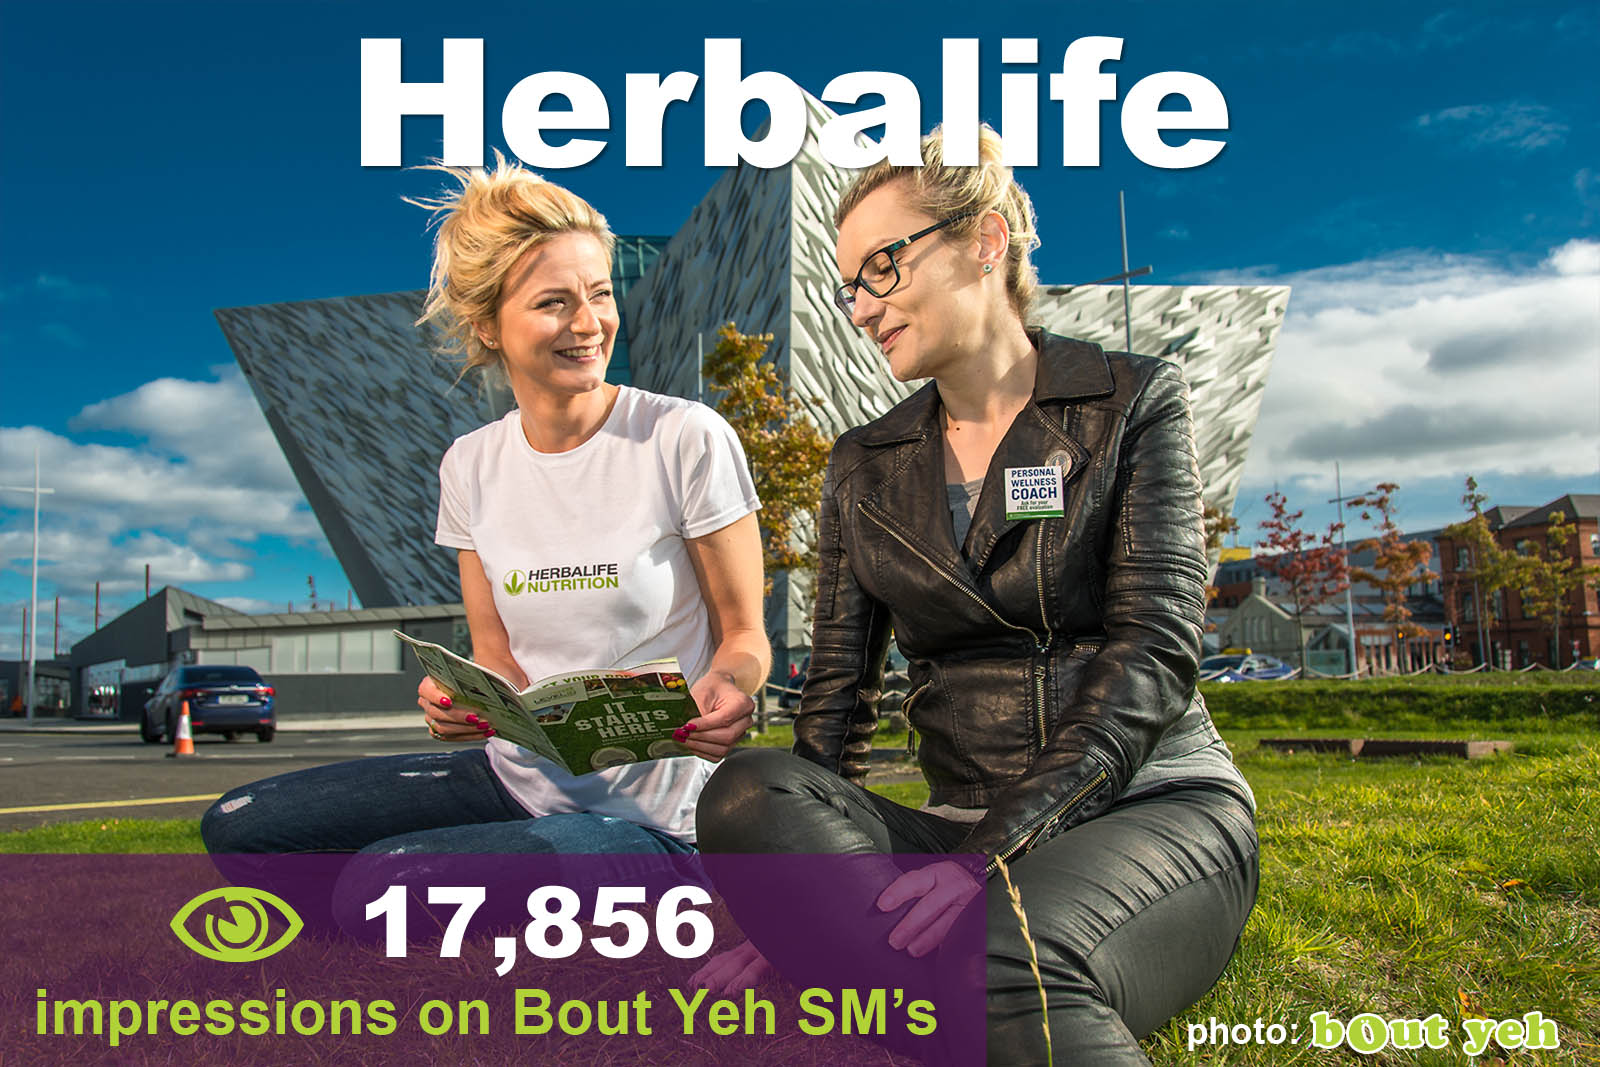 Social Media Marketing Consultants Belfast - Herbalife SMM campaign overview photo. Photo by Bout Yeh used in a Social Media Marketing campaign across Bout Yeh's Social Media platforms for Herbalife agent in Northern Ireland.